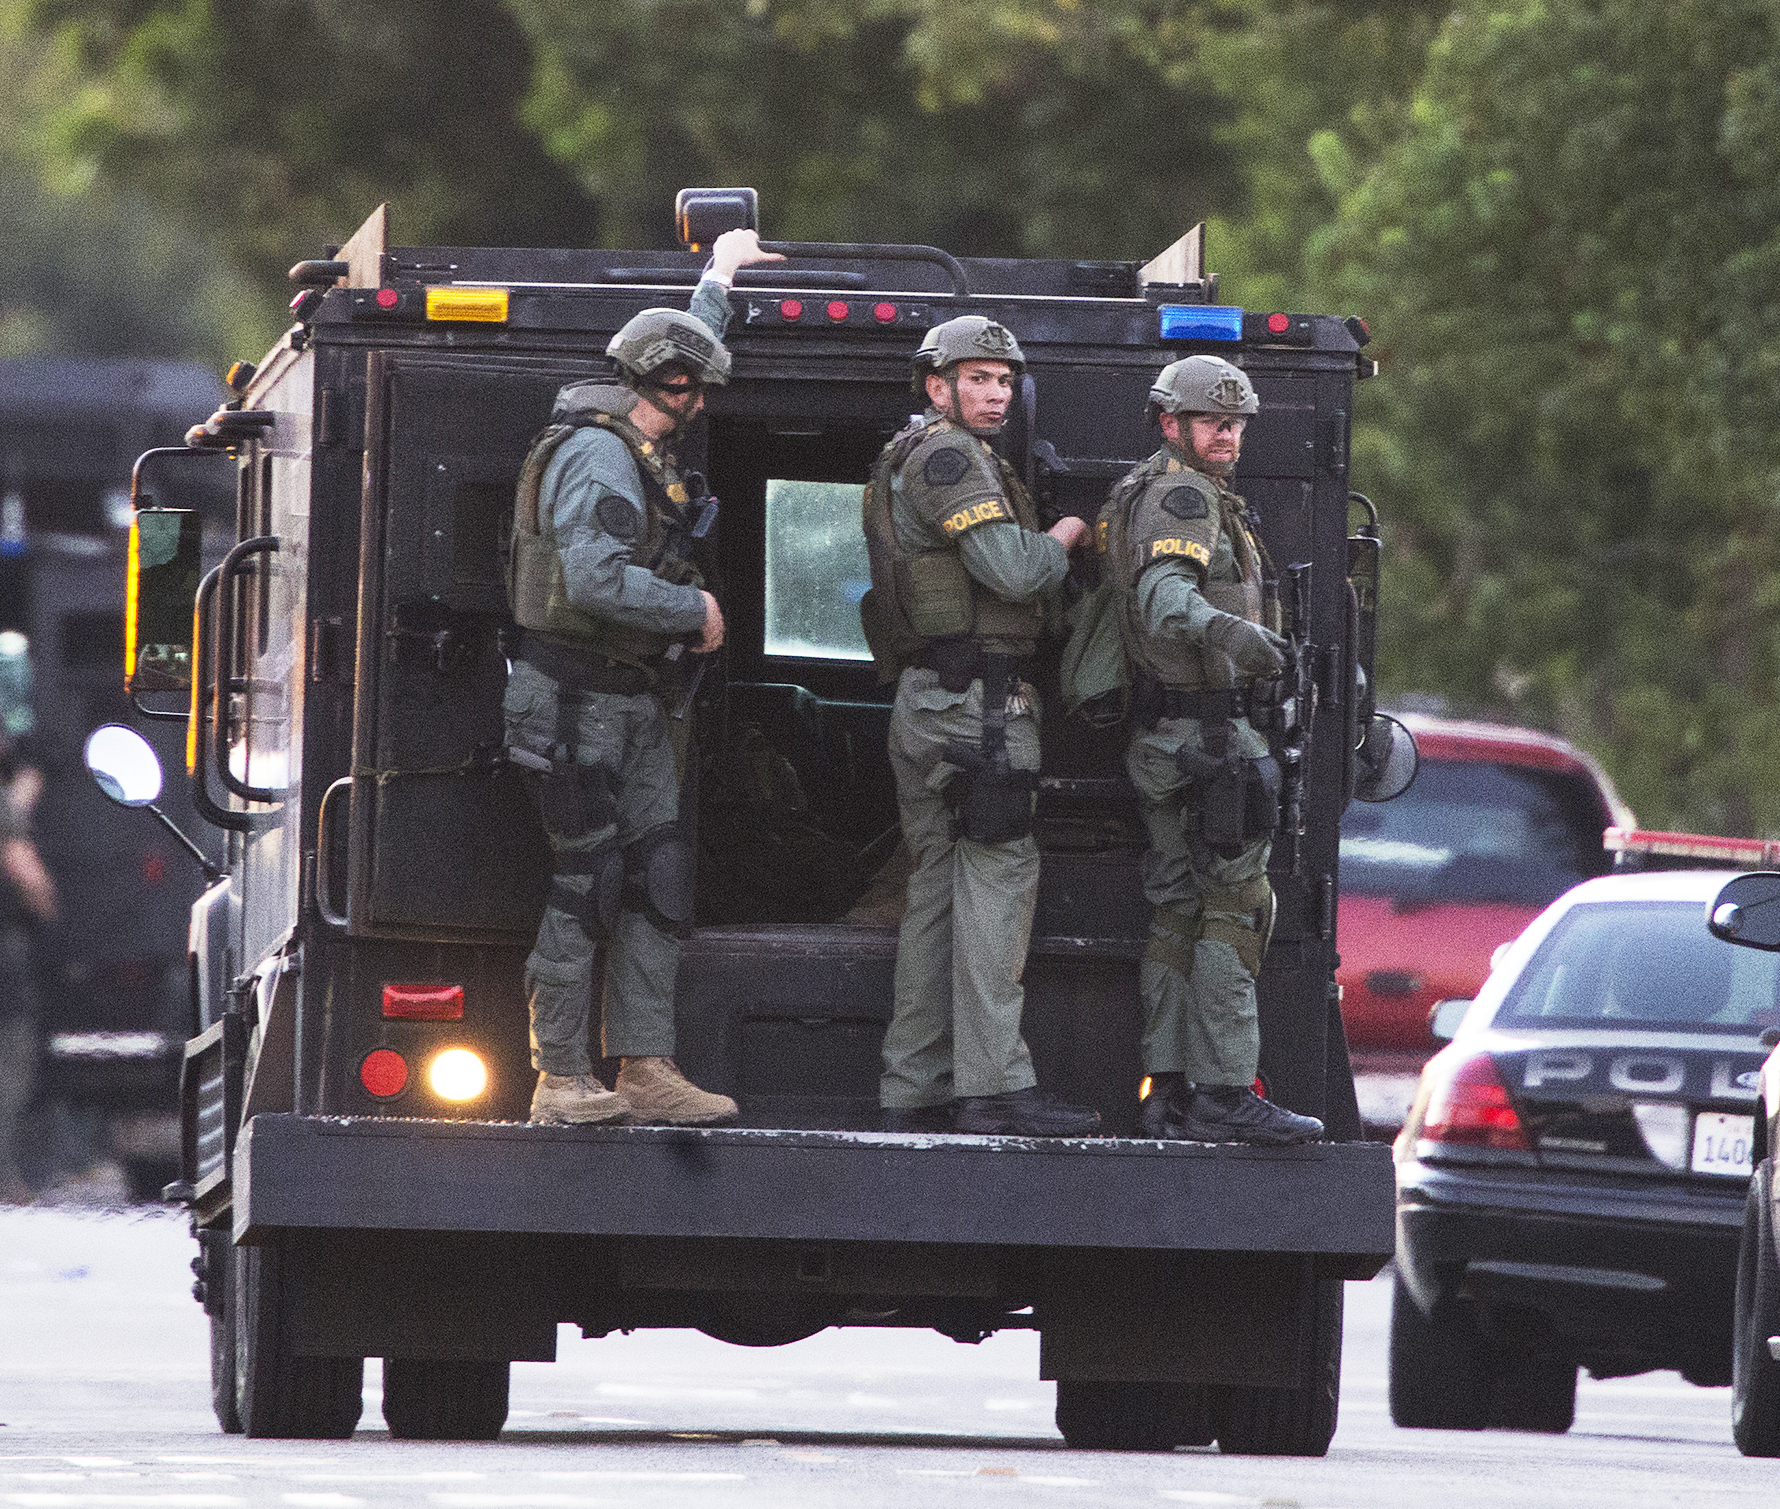 SWAT officers arrive on scene at the intersection of Orange Avenue and Fourth Street after 4 people were shot in Azusa, Calif., on Tuesday, Nov. 8, 2016. (Gina Ferazzi/Los Angeles Times/TNS)